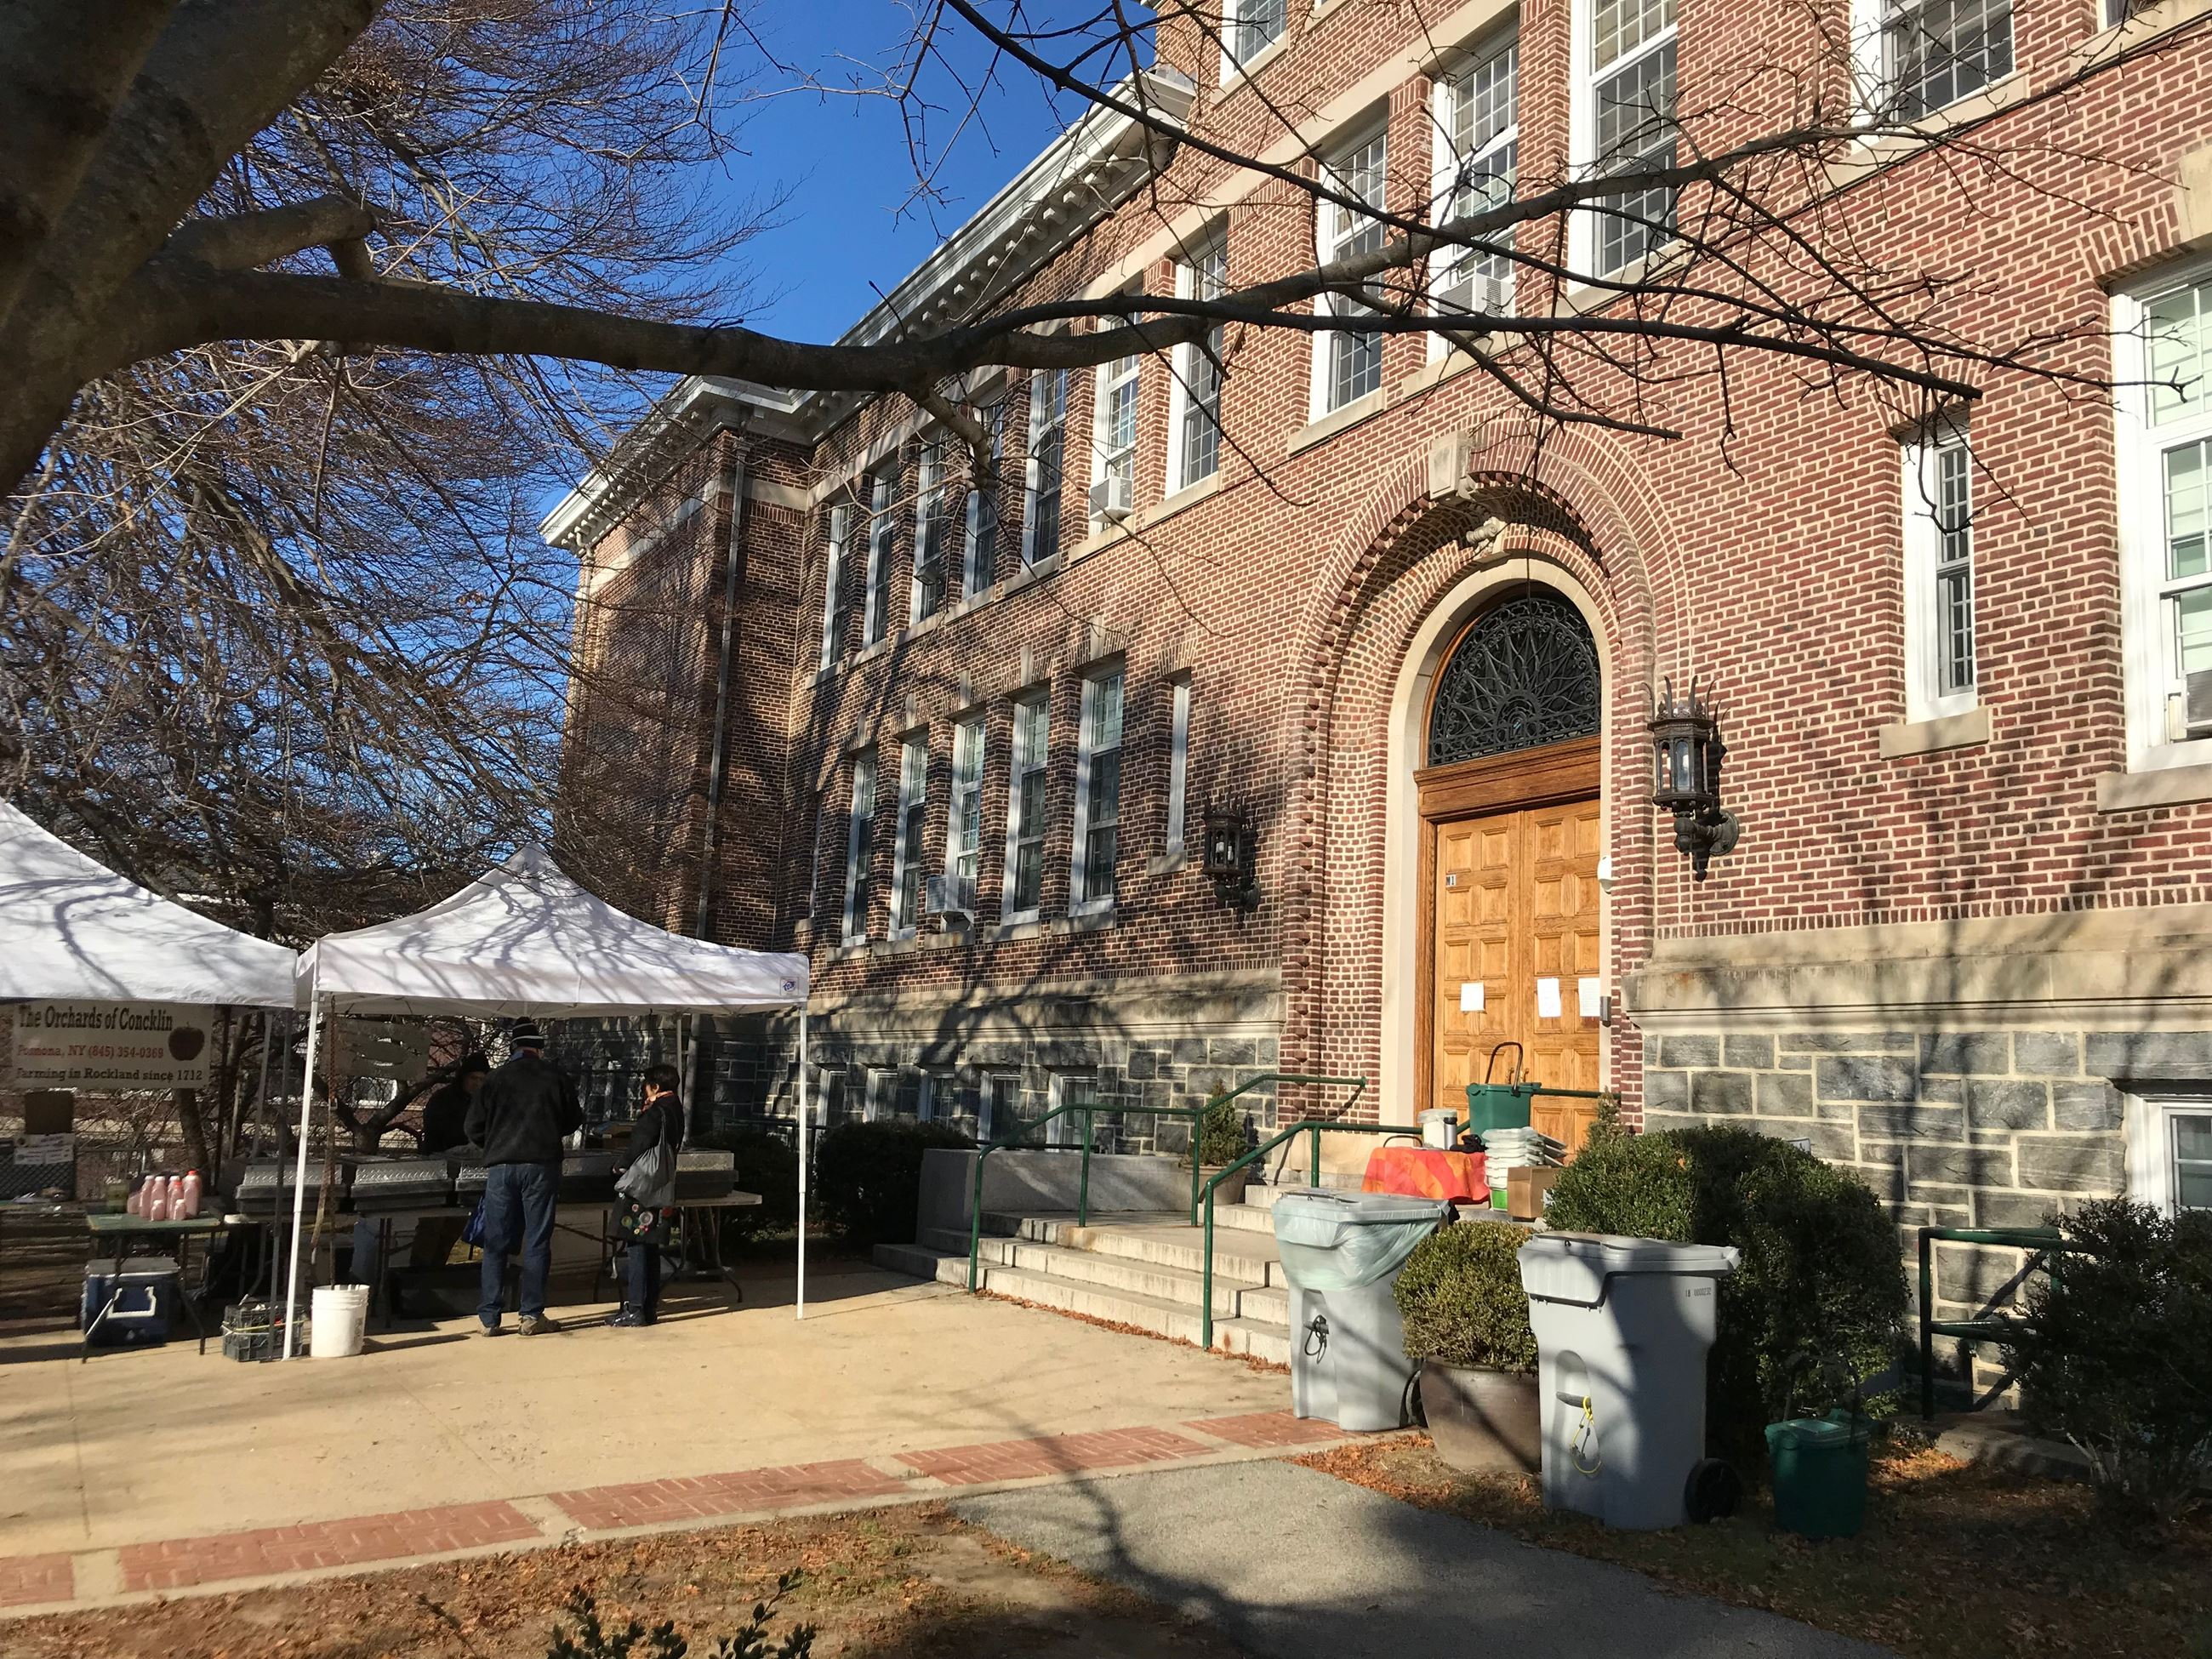 Winter Food Scraps Collection at Main Street School